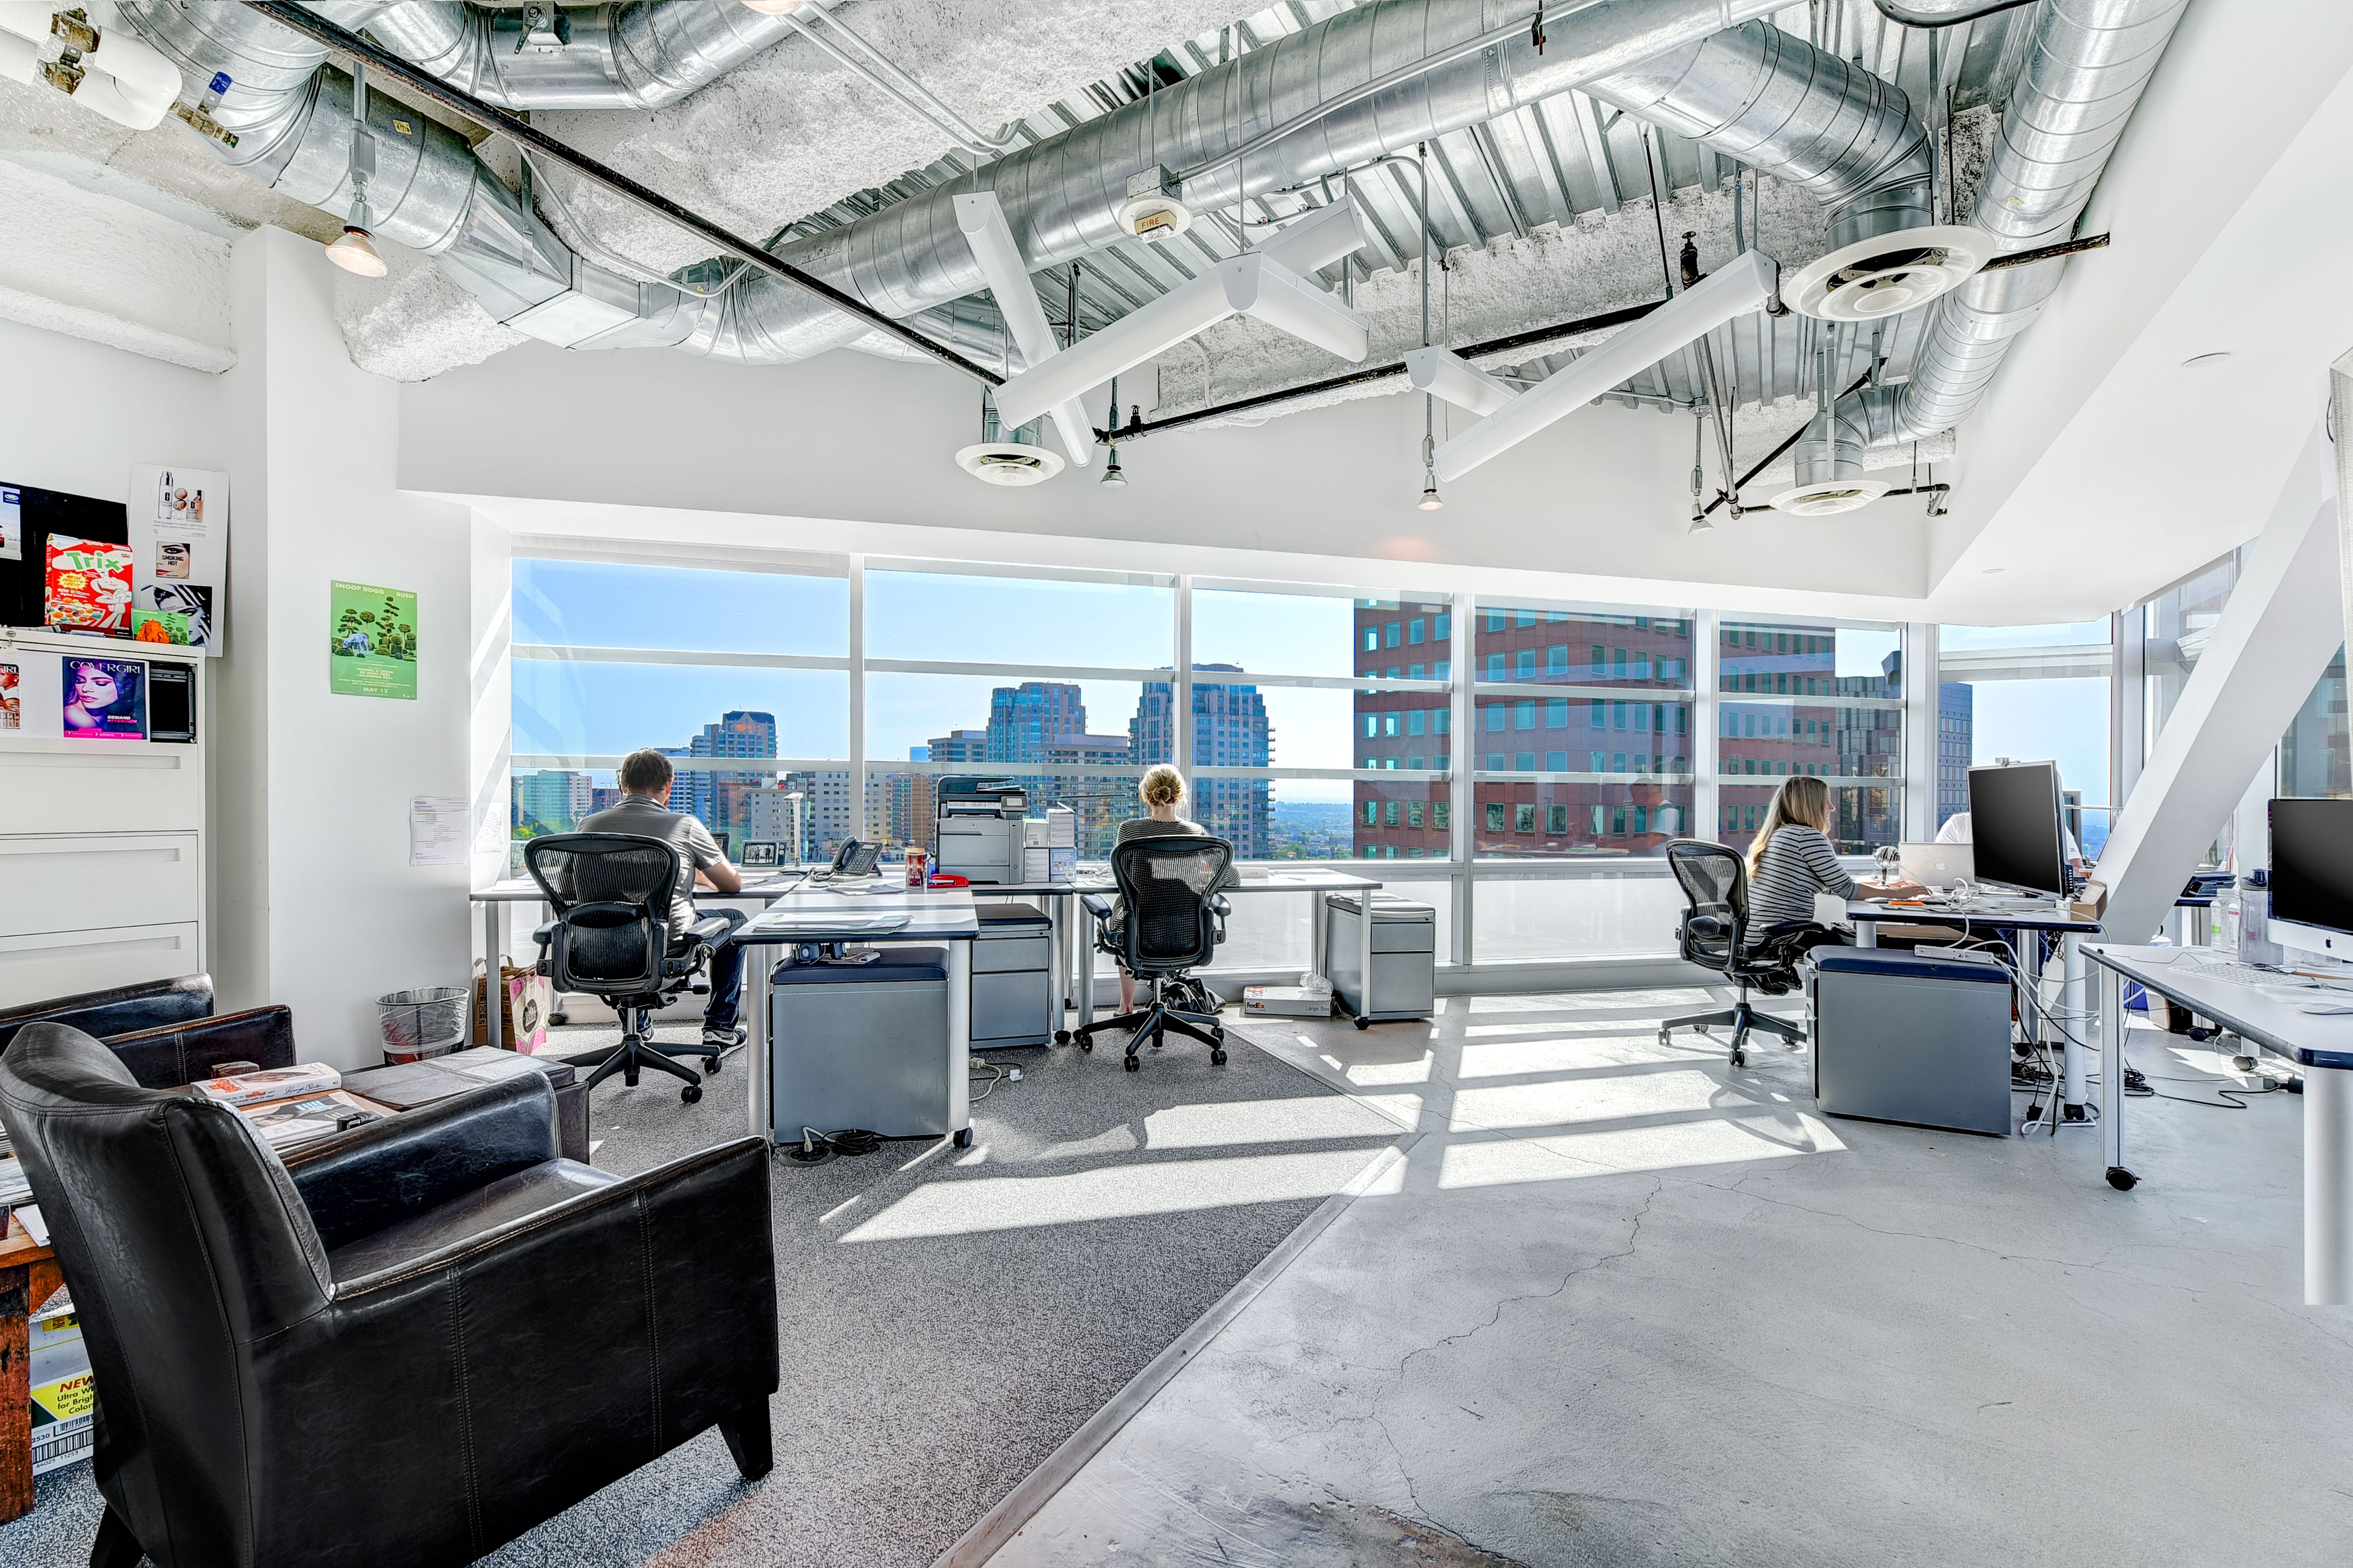 Large Open Space Office To Allow For Collaboration And The View